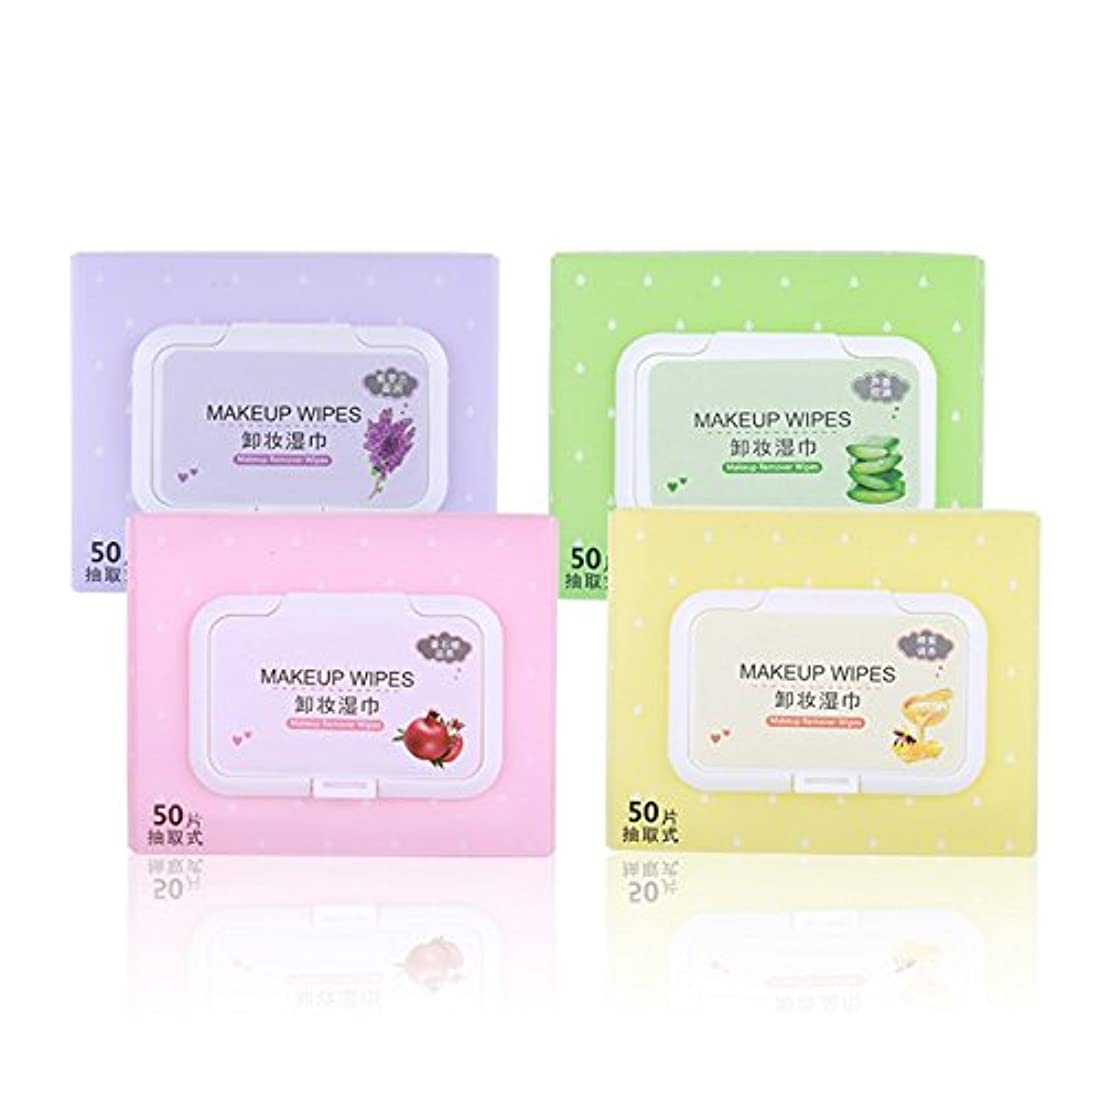 50 pcs/pack Beauty Non-Woven Fabric Makeup Remover Wipes Four Kinds Scent Comfortable Face Makeup Remover Pads...